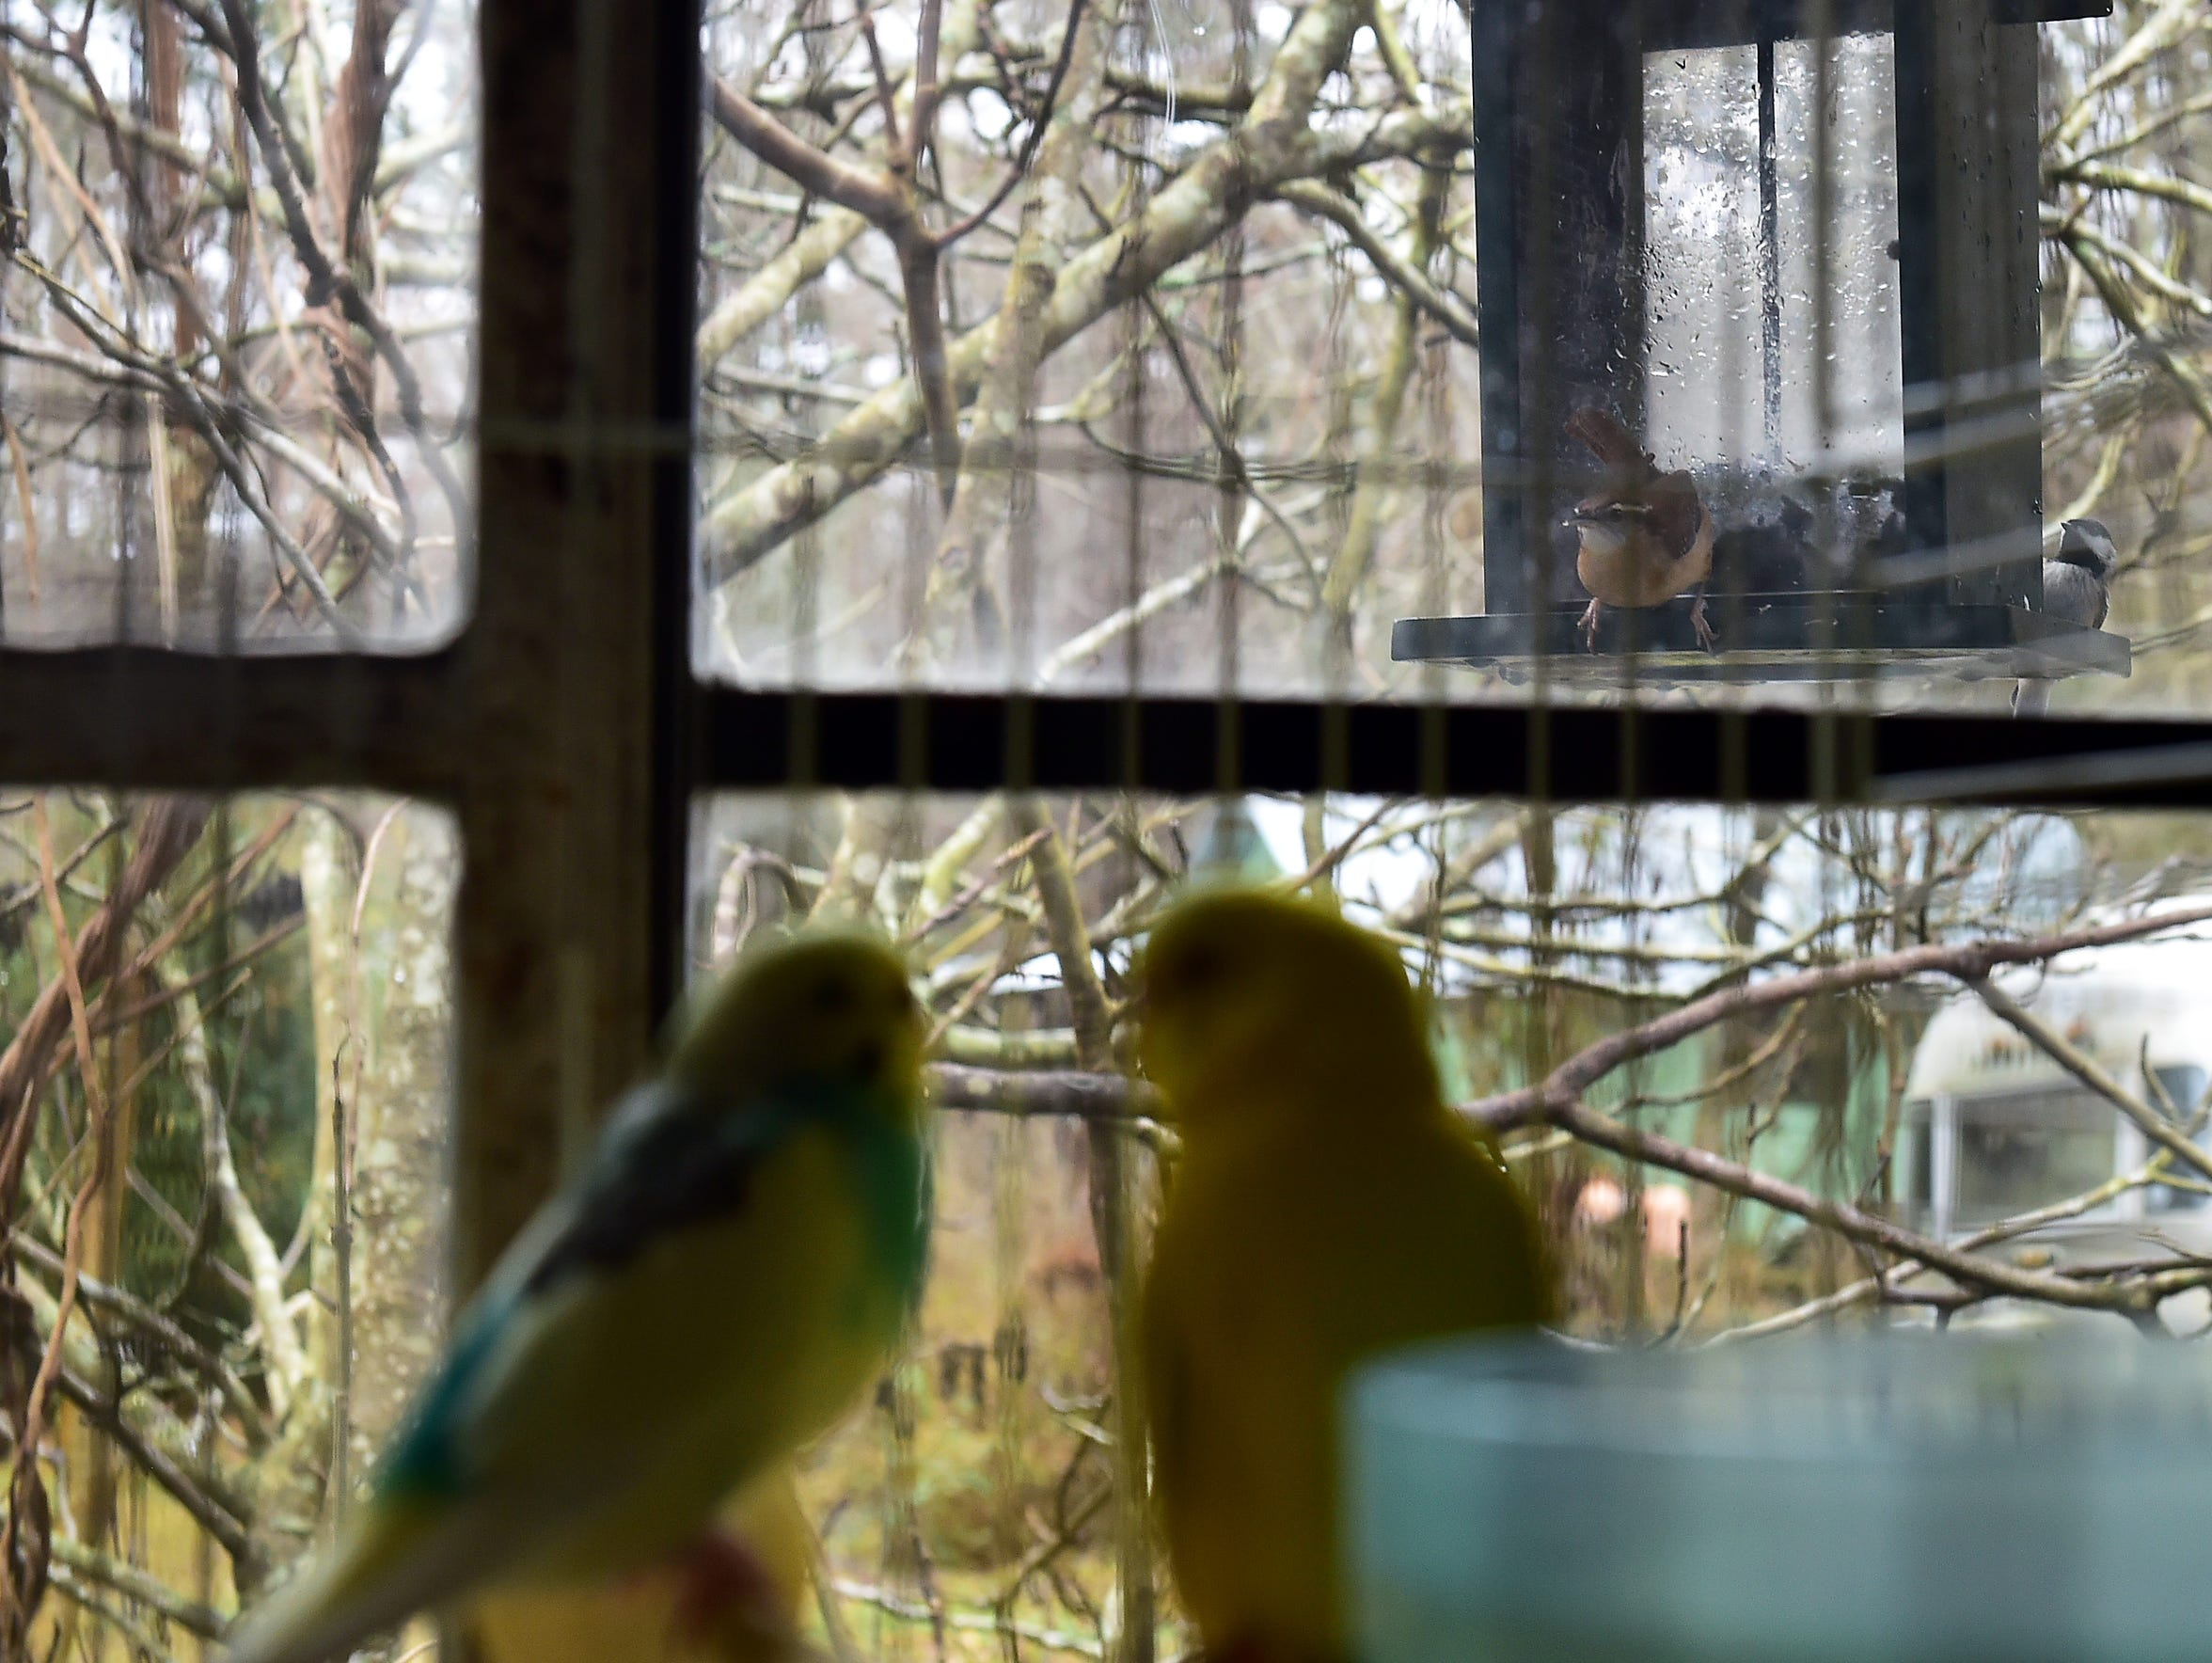 Two parakeets in a cage in Brooke Conner's bedroom stare out the window at a bird feeder.